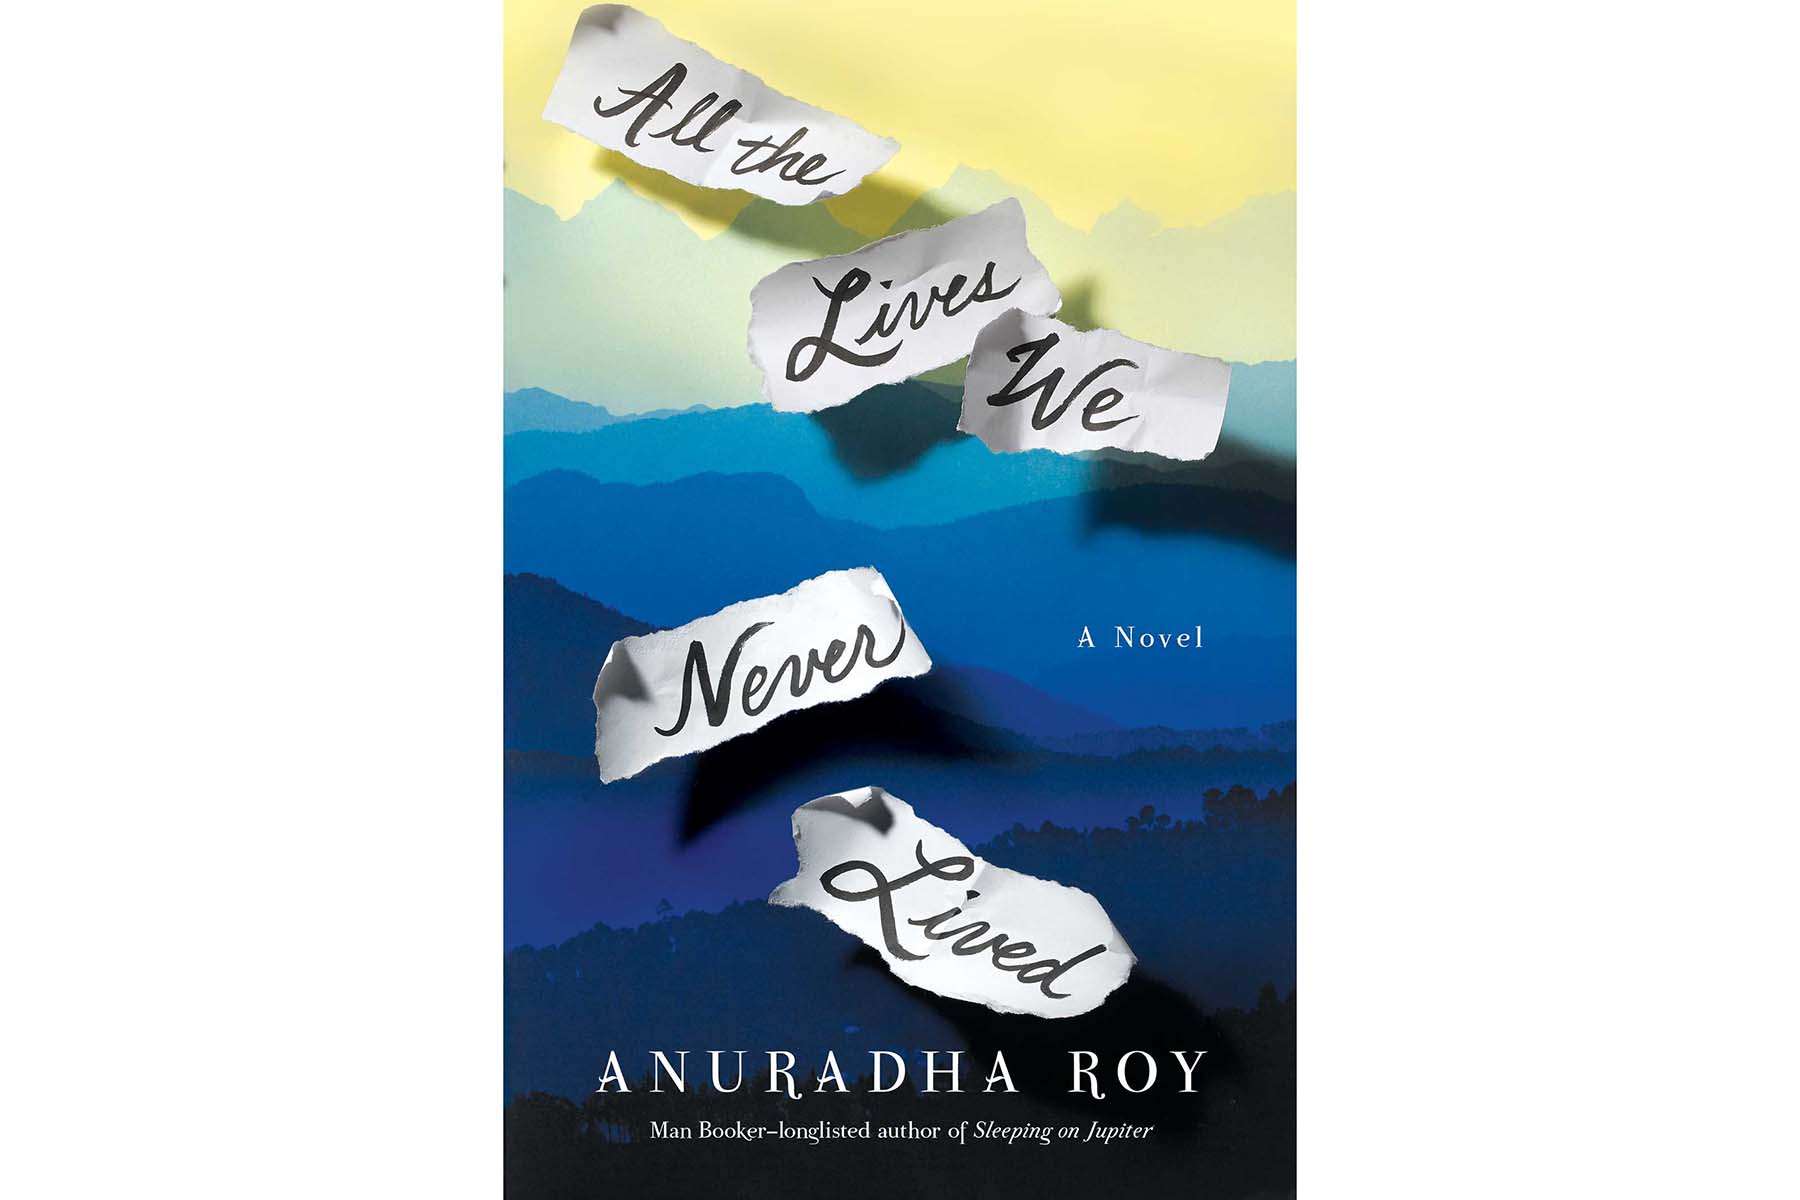 All the Lives We Never Lived, by Anuradha Roy